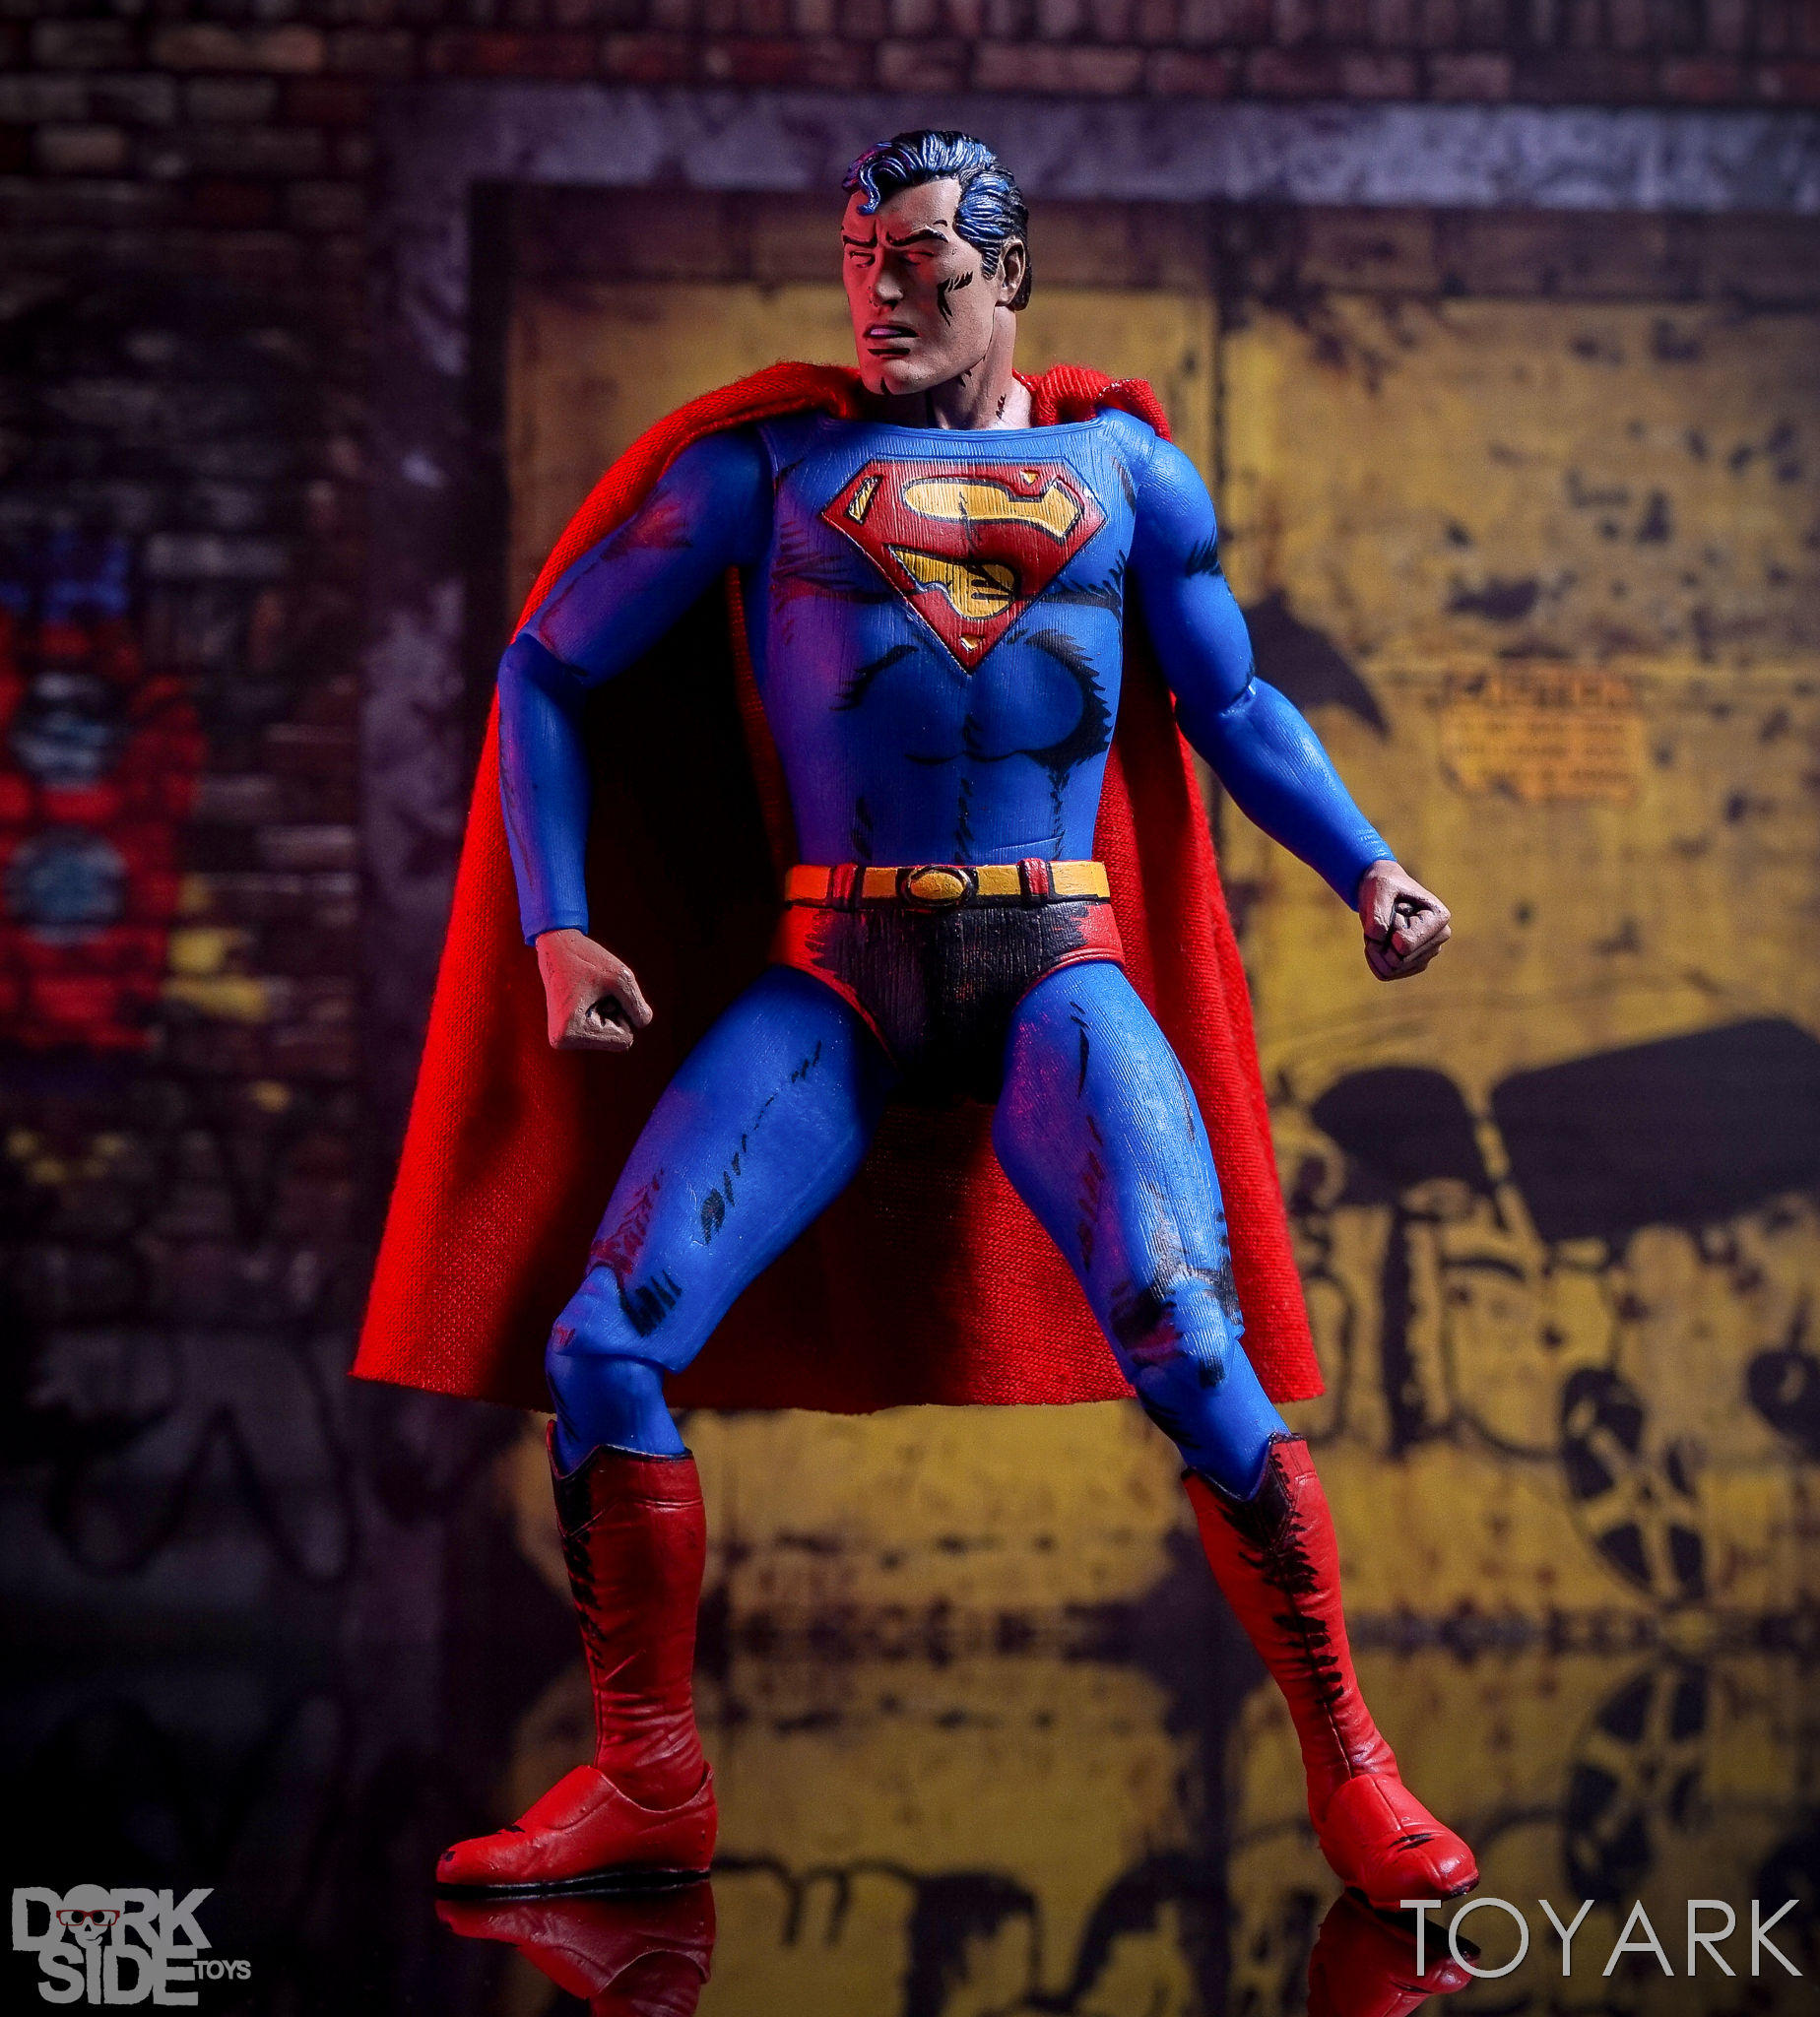 http://news.toyark.com/wp-content/uploads/sites/4/2017/02/NECA-Ali-vs-Superman-Set-041.jpg